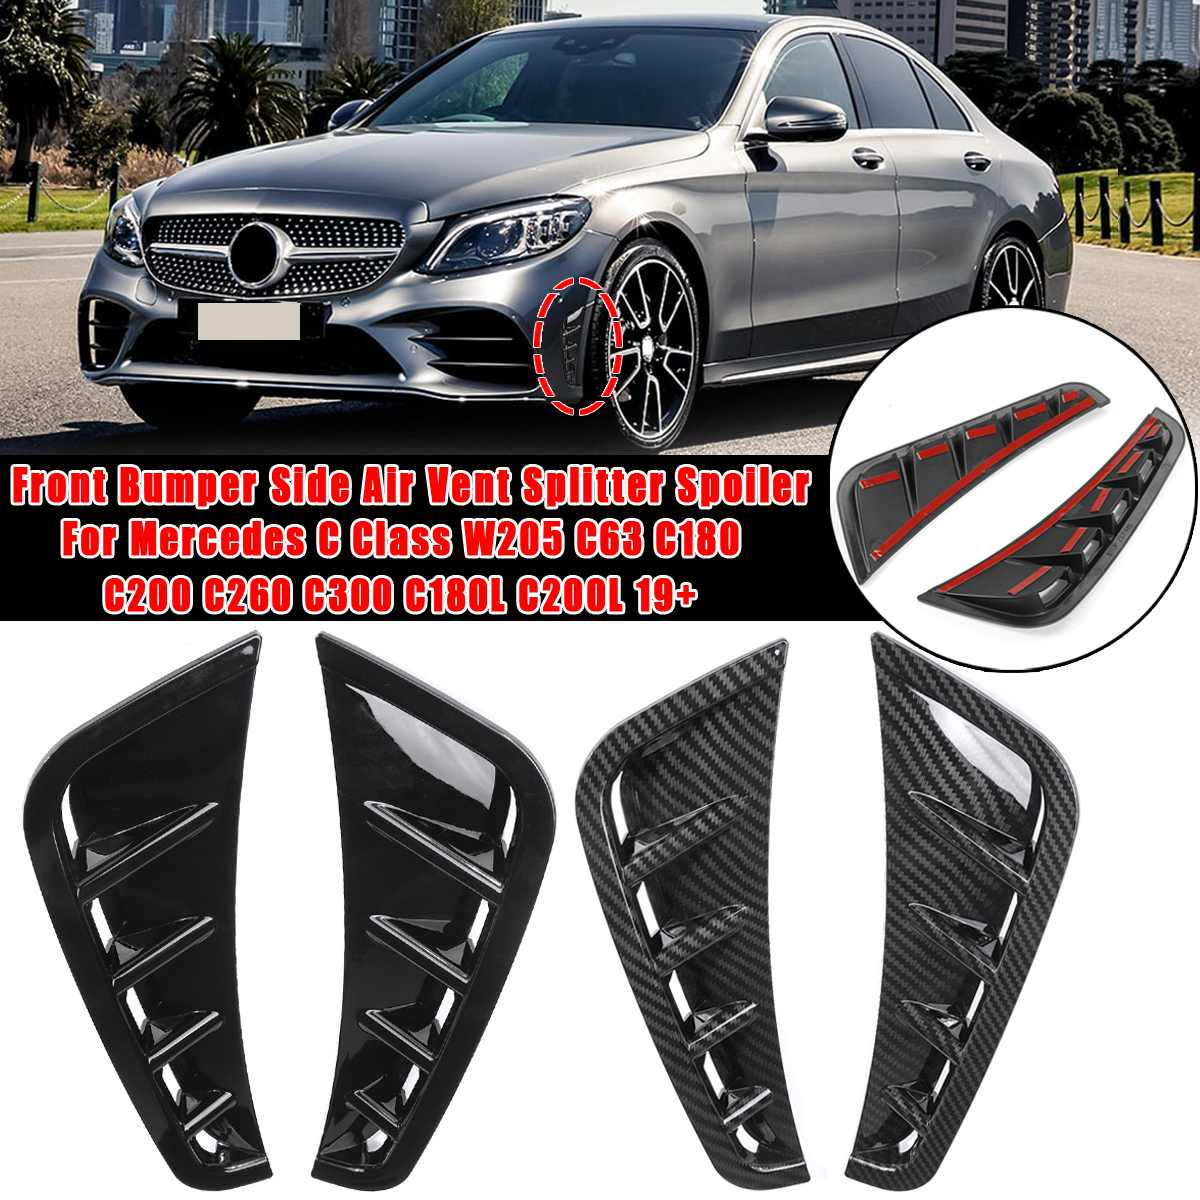 Pair Canard Spoiler Splitter Front bumper side trim cover <font><b>For</b></font> <font><b>Mercedes</b></font> C Class W205 C63 C180 <font><b>C200</b></font> C260 C300 C180L C200L <font><b>2019</b></font>+ image